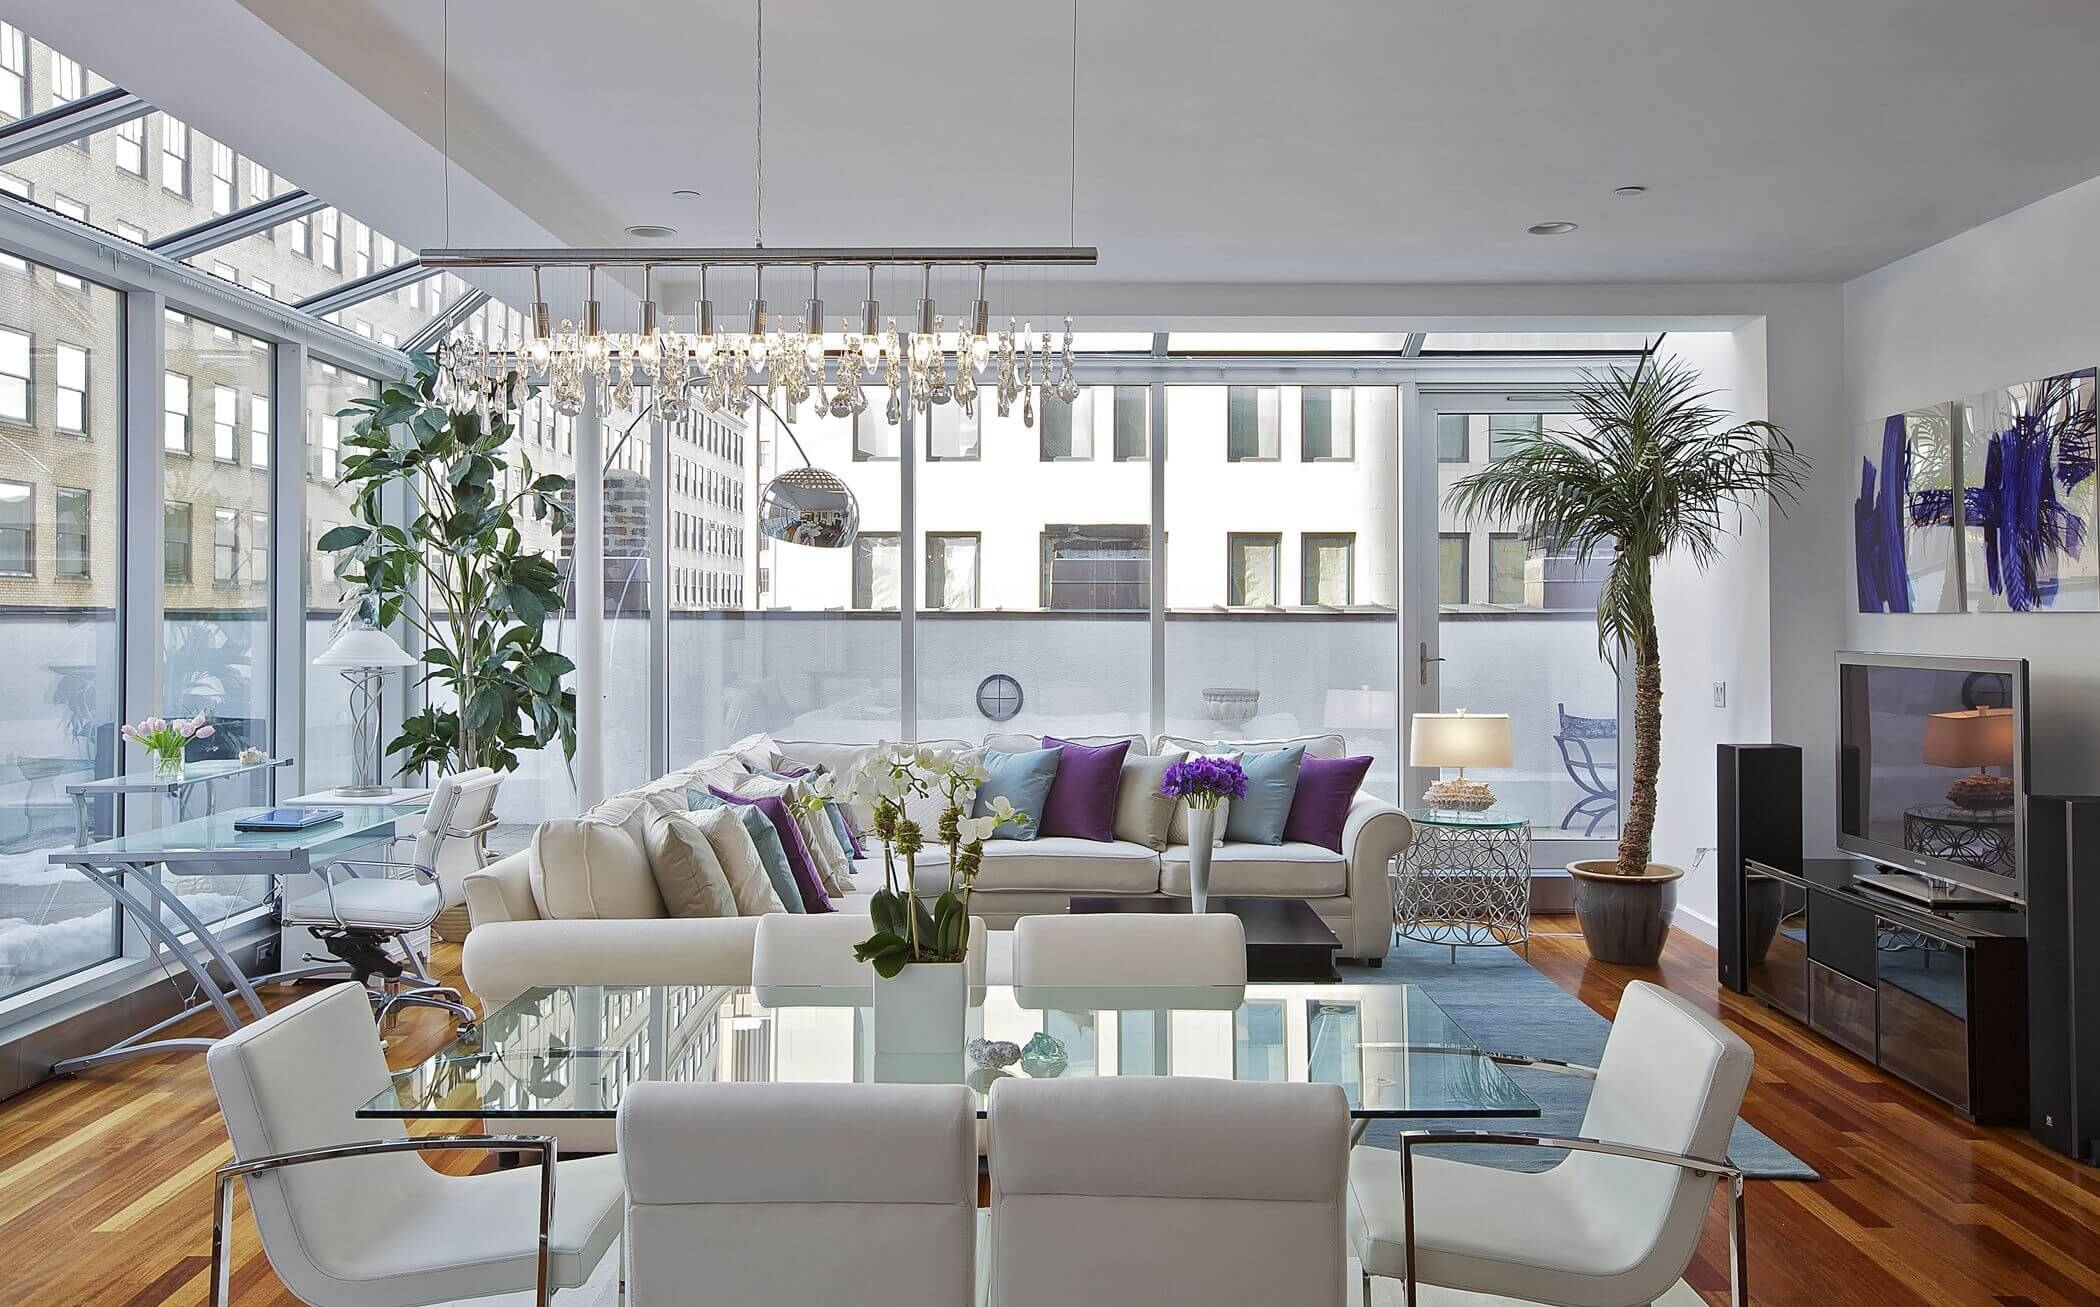 Sofa Dining Table. Glass Round Coffee Table With Beaufurn within Dining Table With Sofa Chairs (Image 14 of 15)